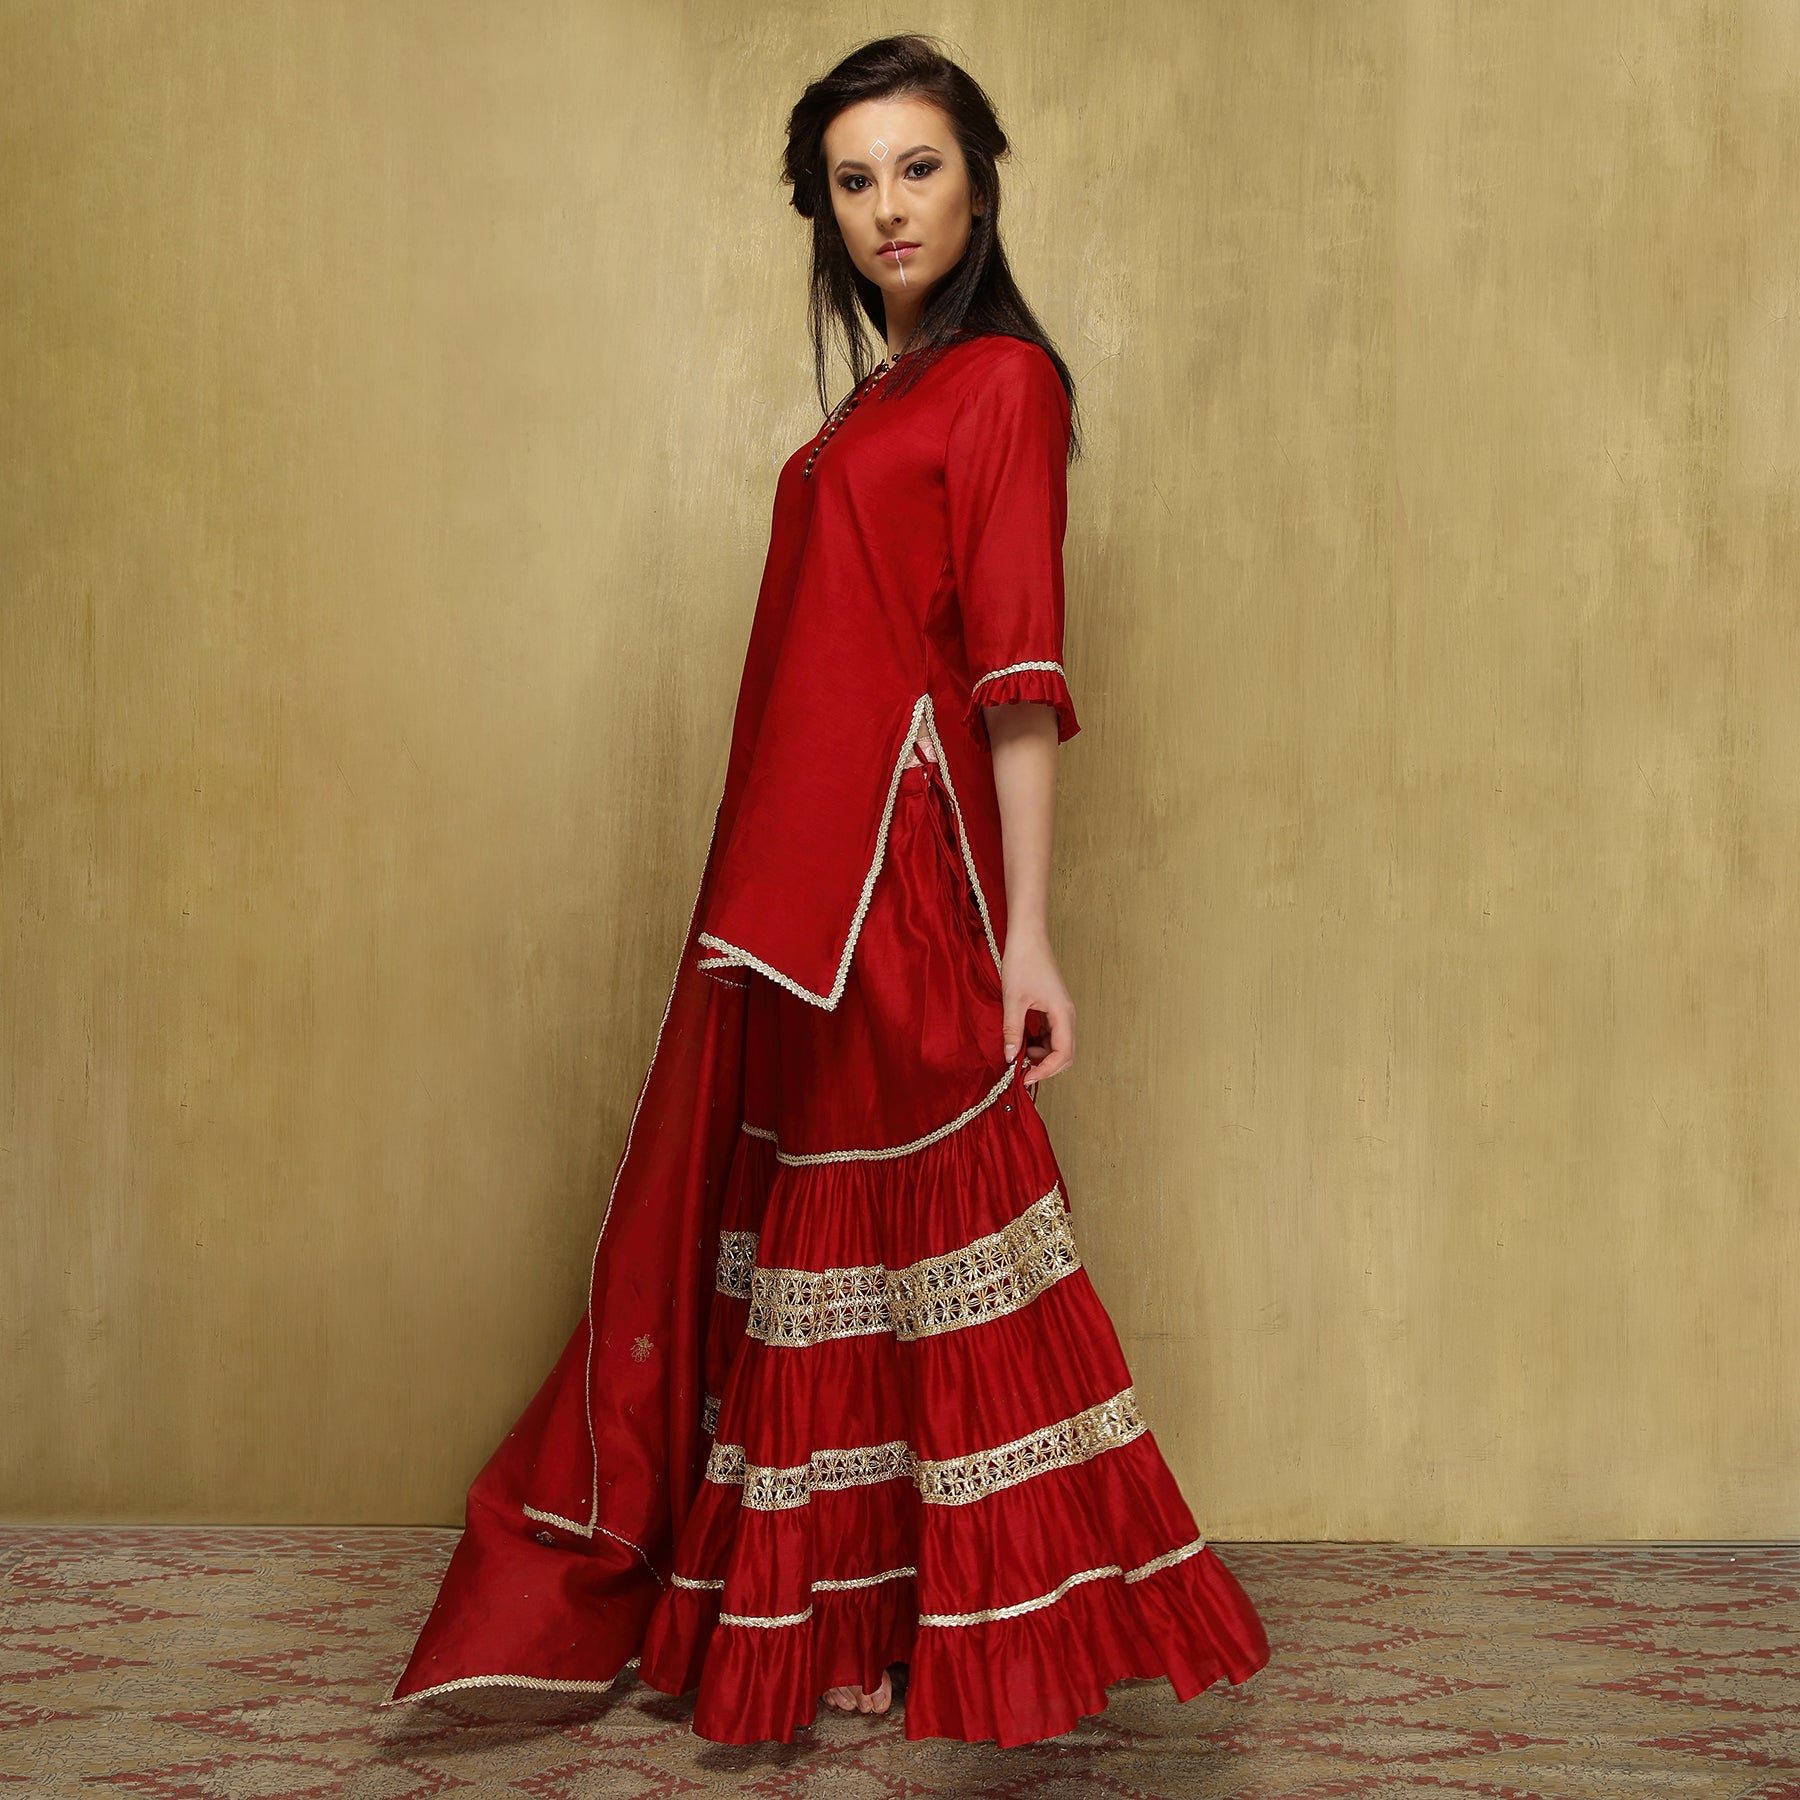 Kamya ruffle ghagra set - Blood Red and Gold